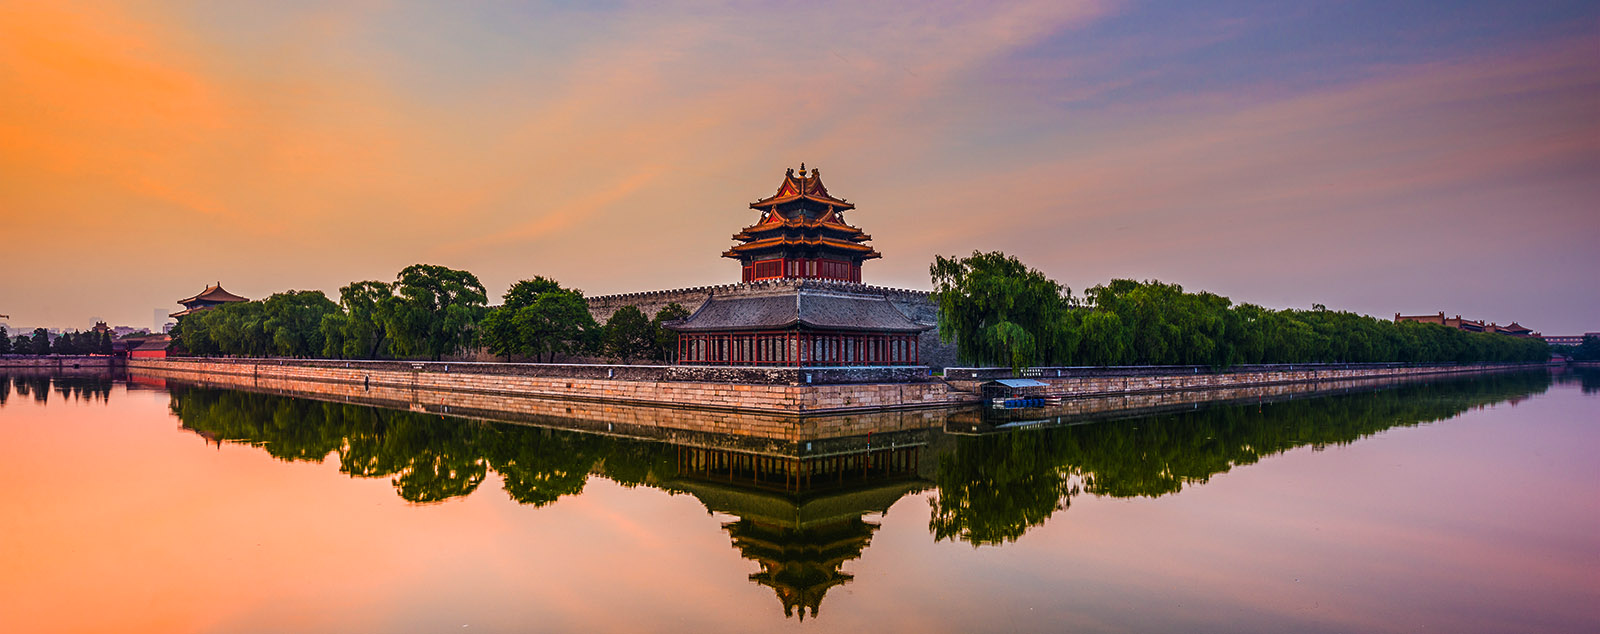 A corner tower of the Forbidden City's ramparts surrounded by a serene moat